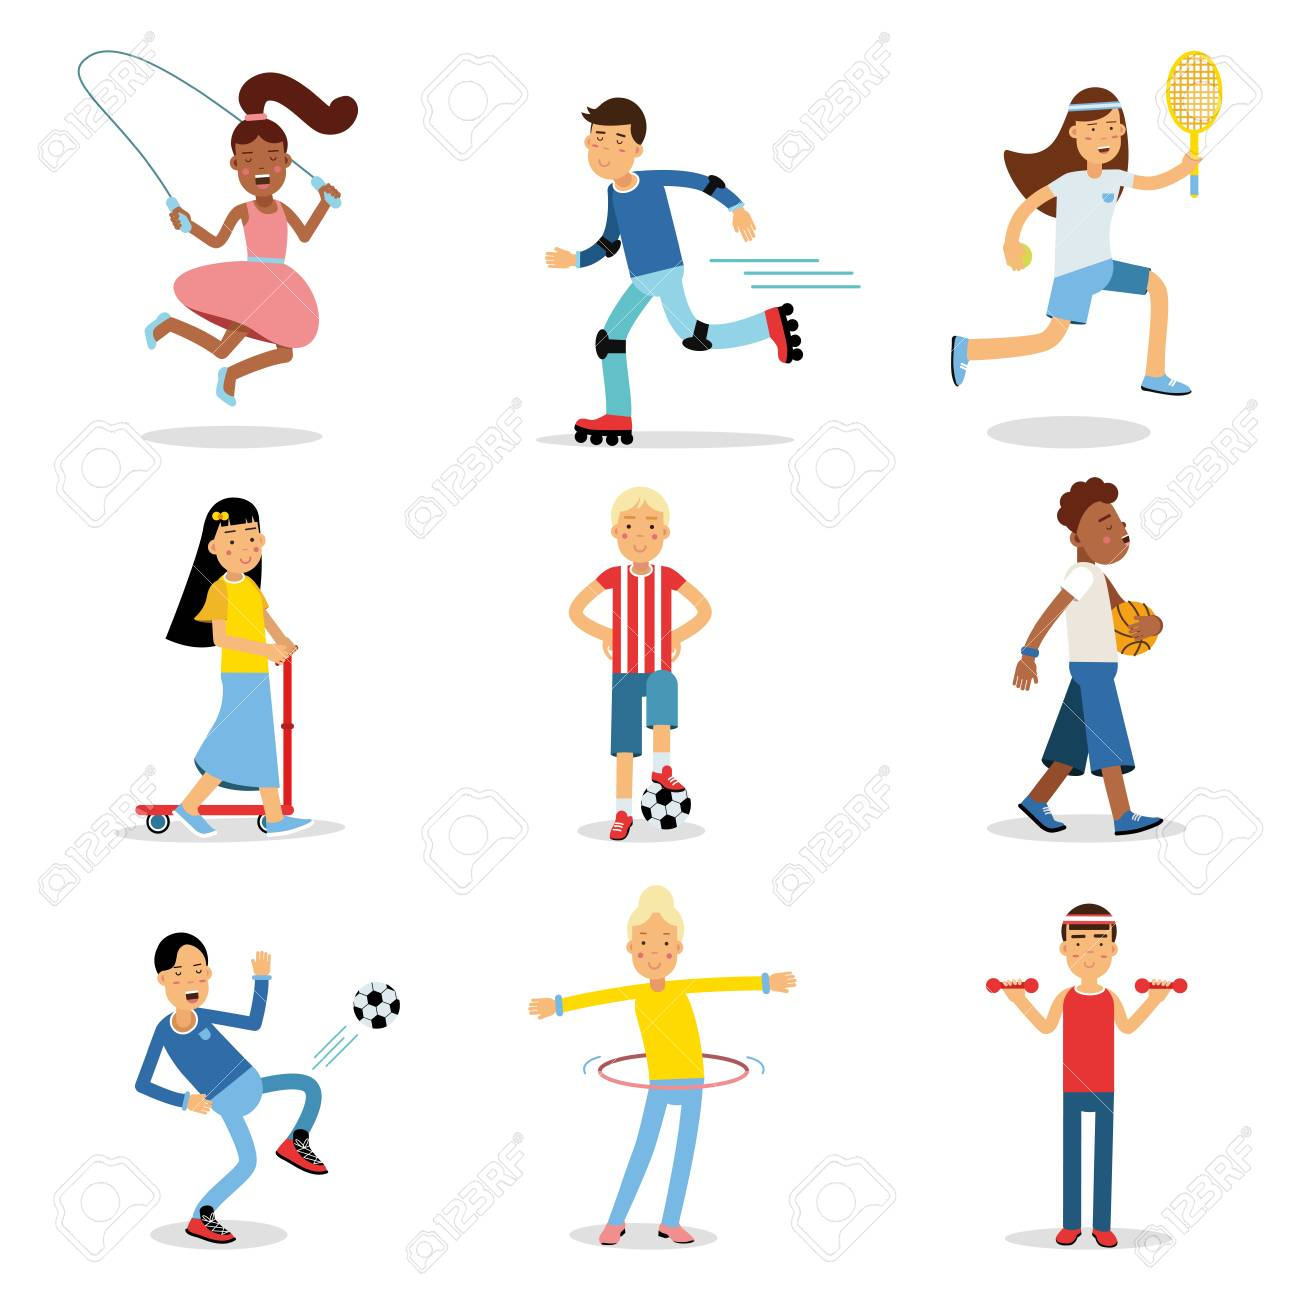 Physical Activity Clipart Free Download Clip Art.